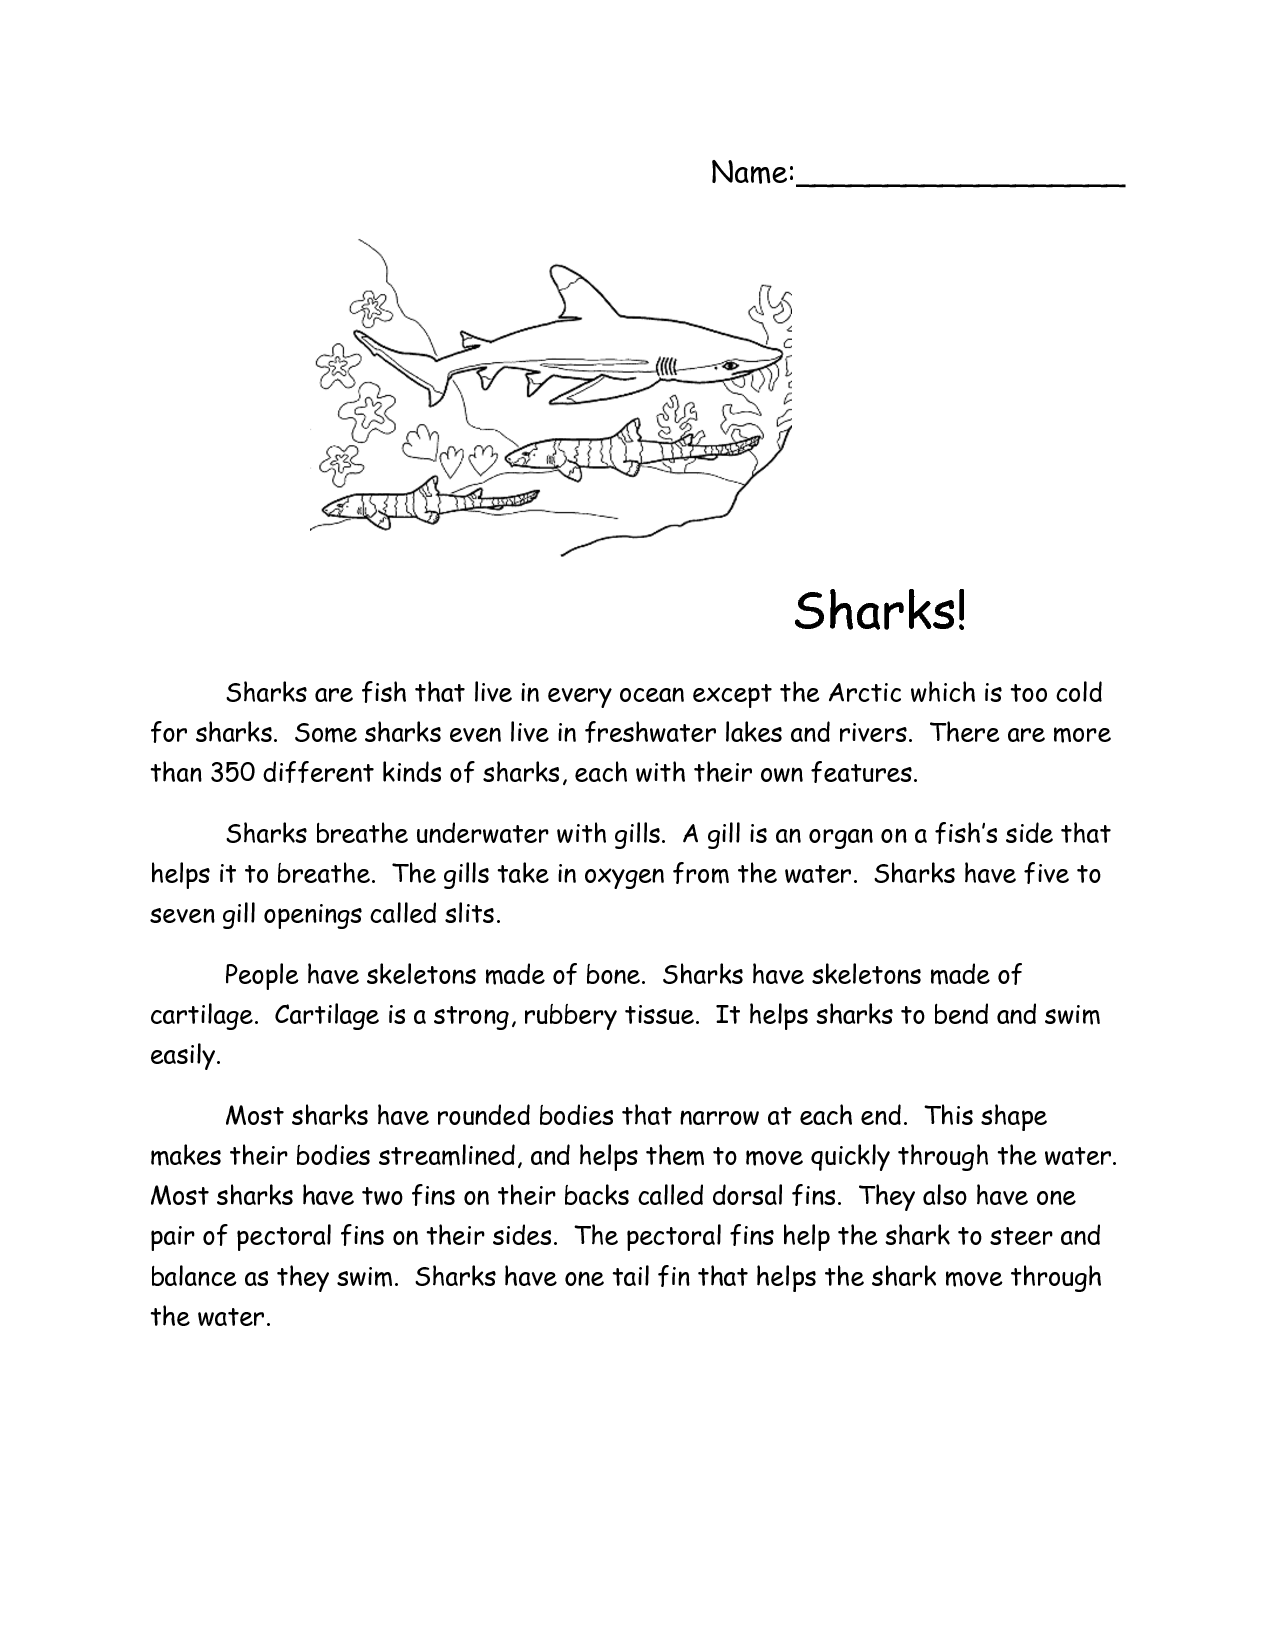 Sharks Reading Comprehension Reading Comprehension Worksheets Reading Comprehension Reading Comprehension Passages [ 1650 x 1275 Pixel ]